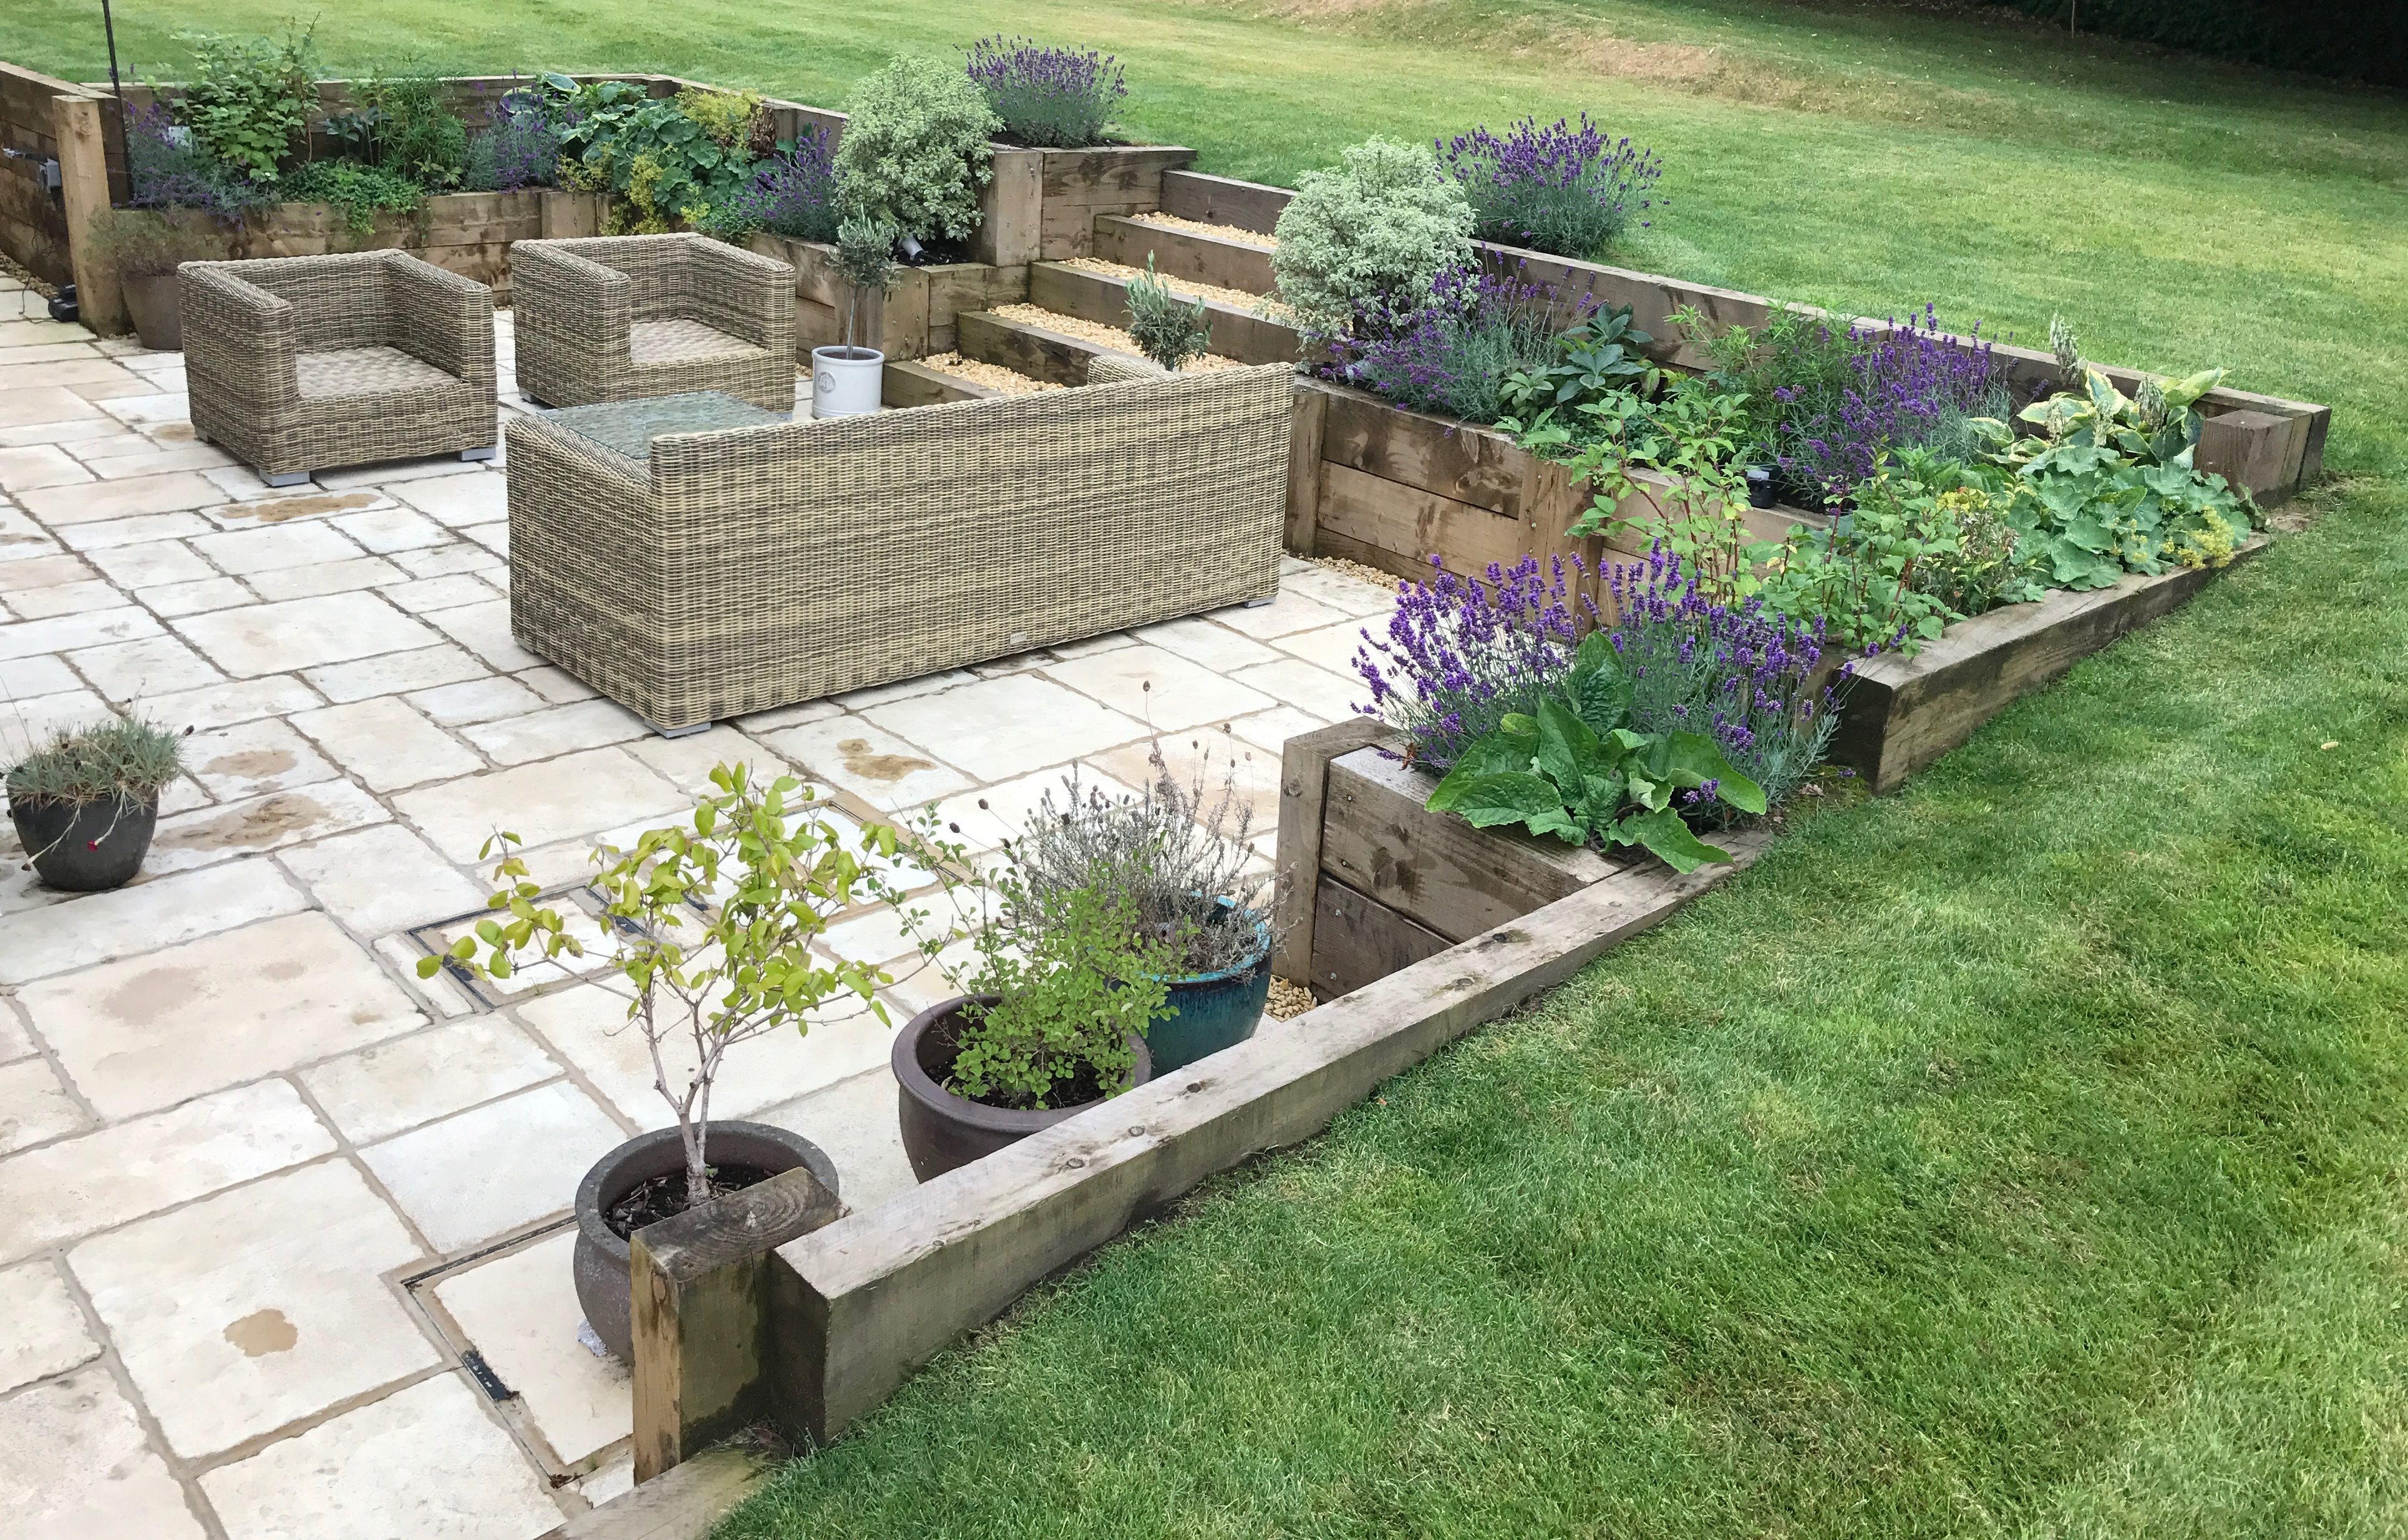 Landscaping - Retaining Walls - Raised Planters - Planting